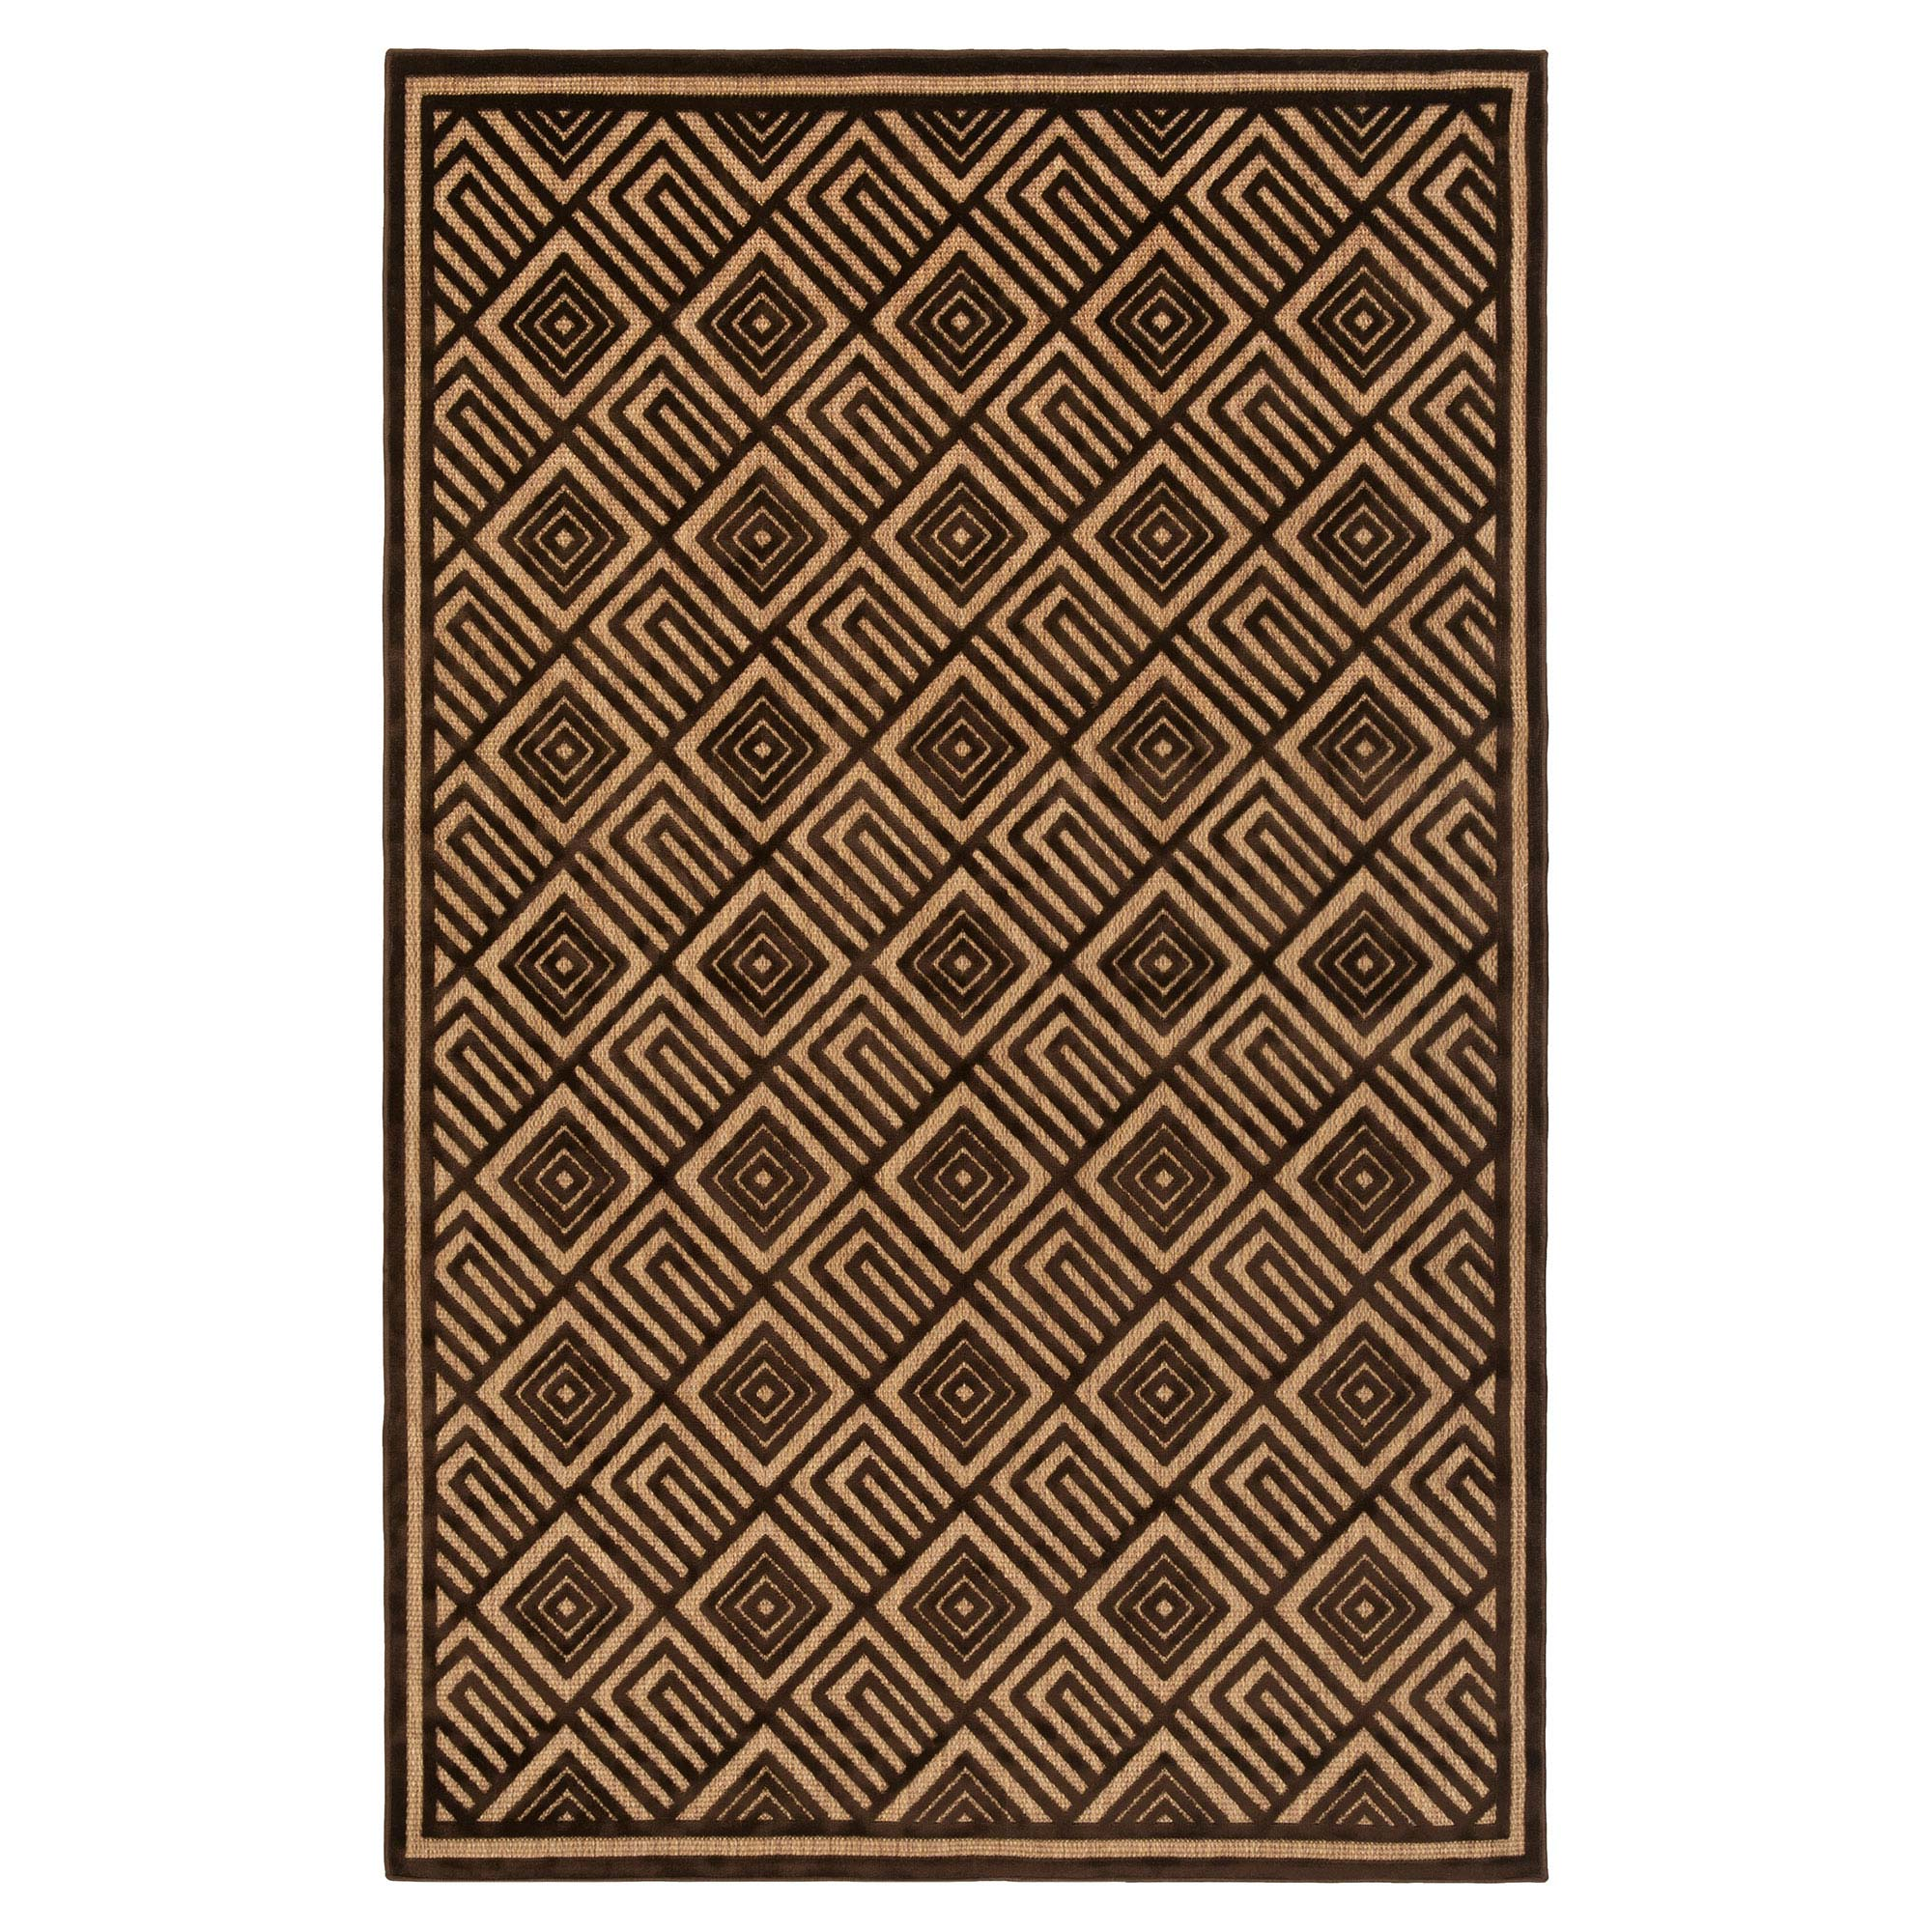 Anouk Global Dark Brown Geometric Outdoor Rug - 4'7x6'7